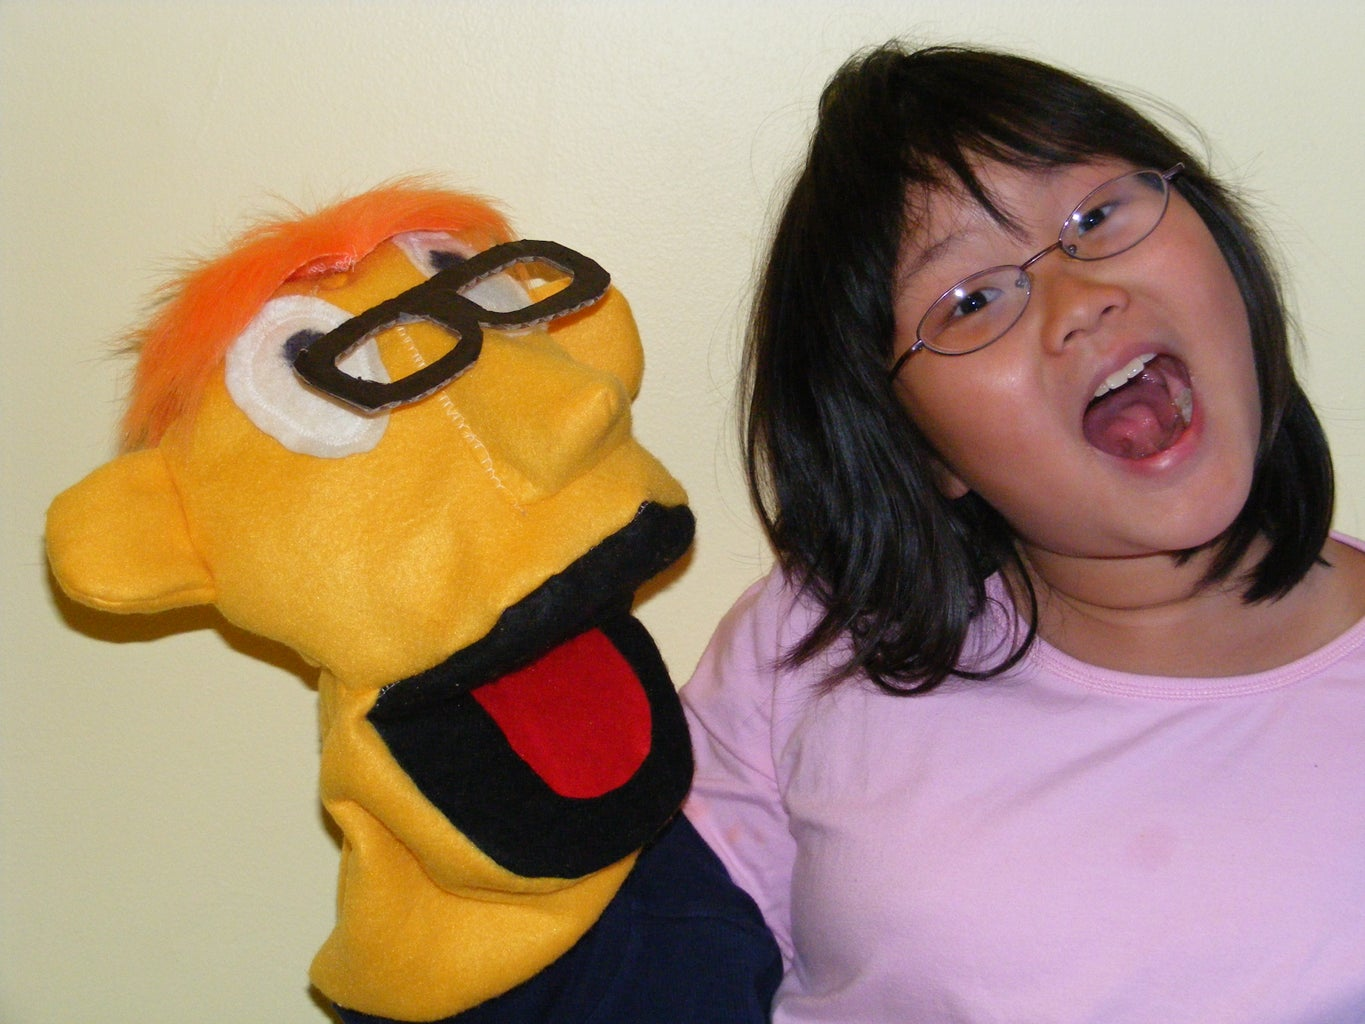 Muppet-style Puppet